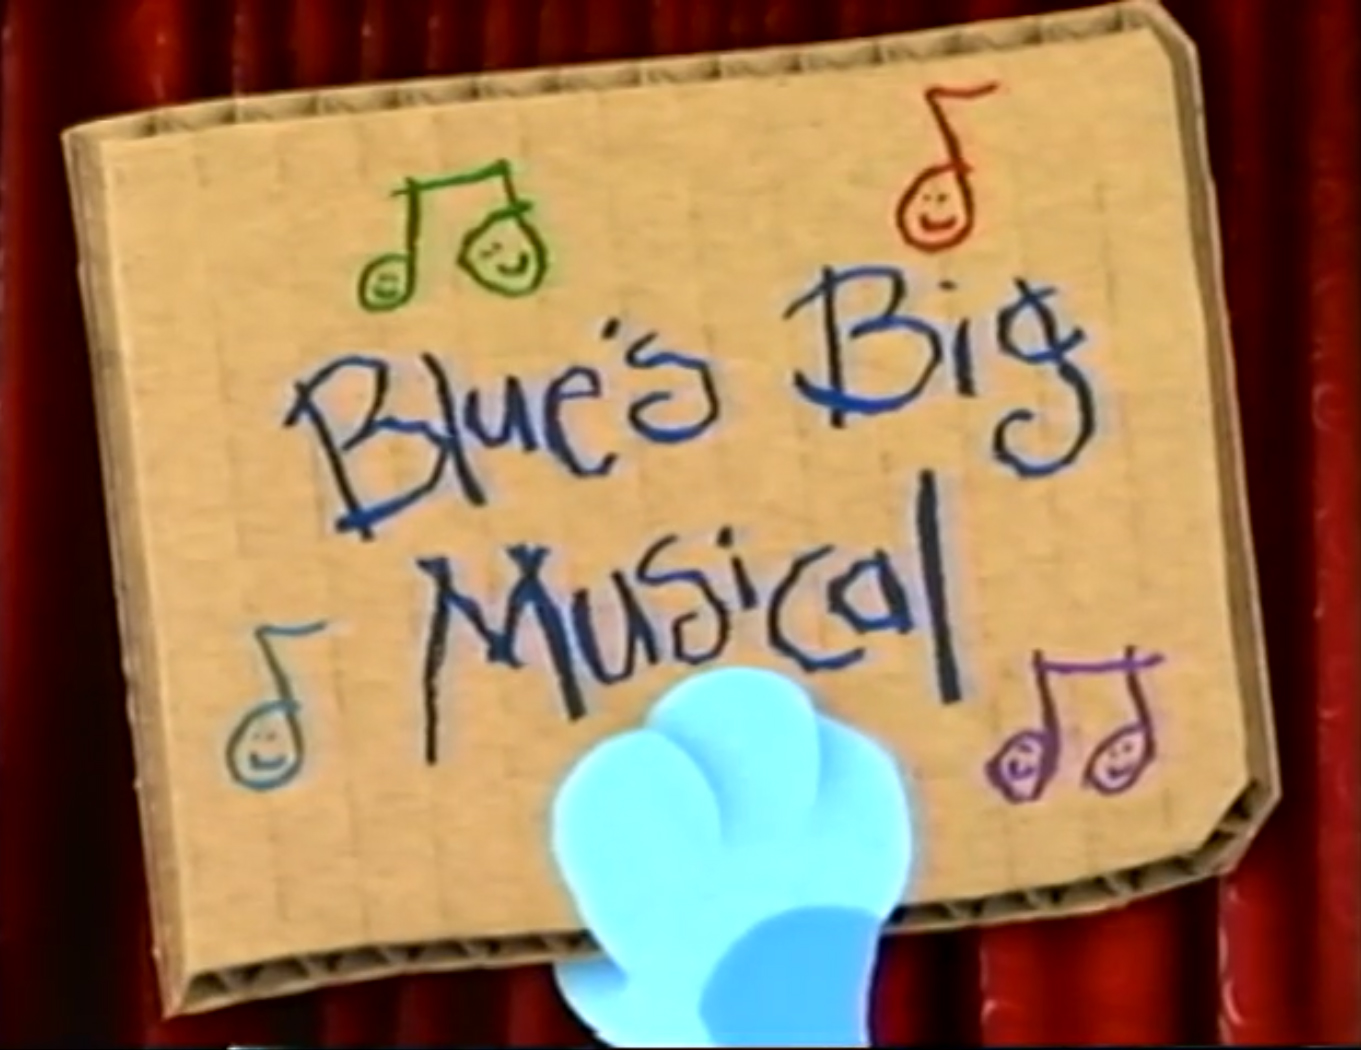 Blue\'s Big Musical | Blue\'s Clues Wiki | FANDOM powered by Wikia